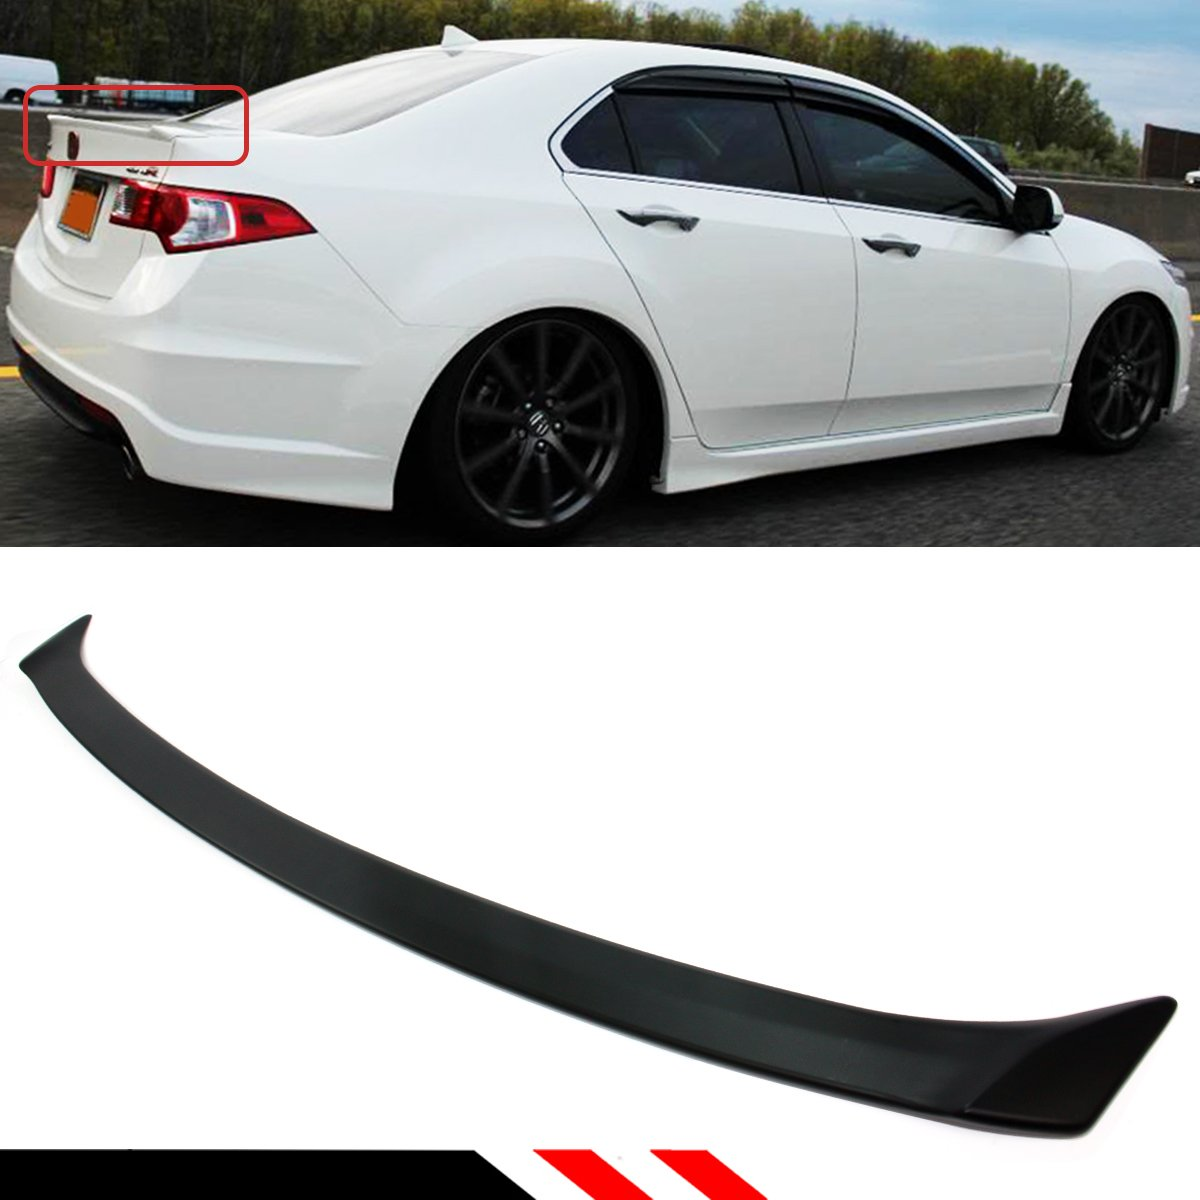 Cuztom Tuning FITS for 2009-2014 Acura TSX Euro R Accord Sport Style Flush FIT Rear Trunk Deck LID Spoiler Wing